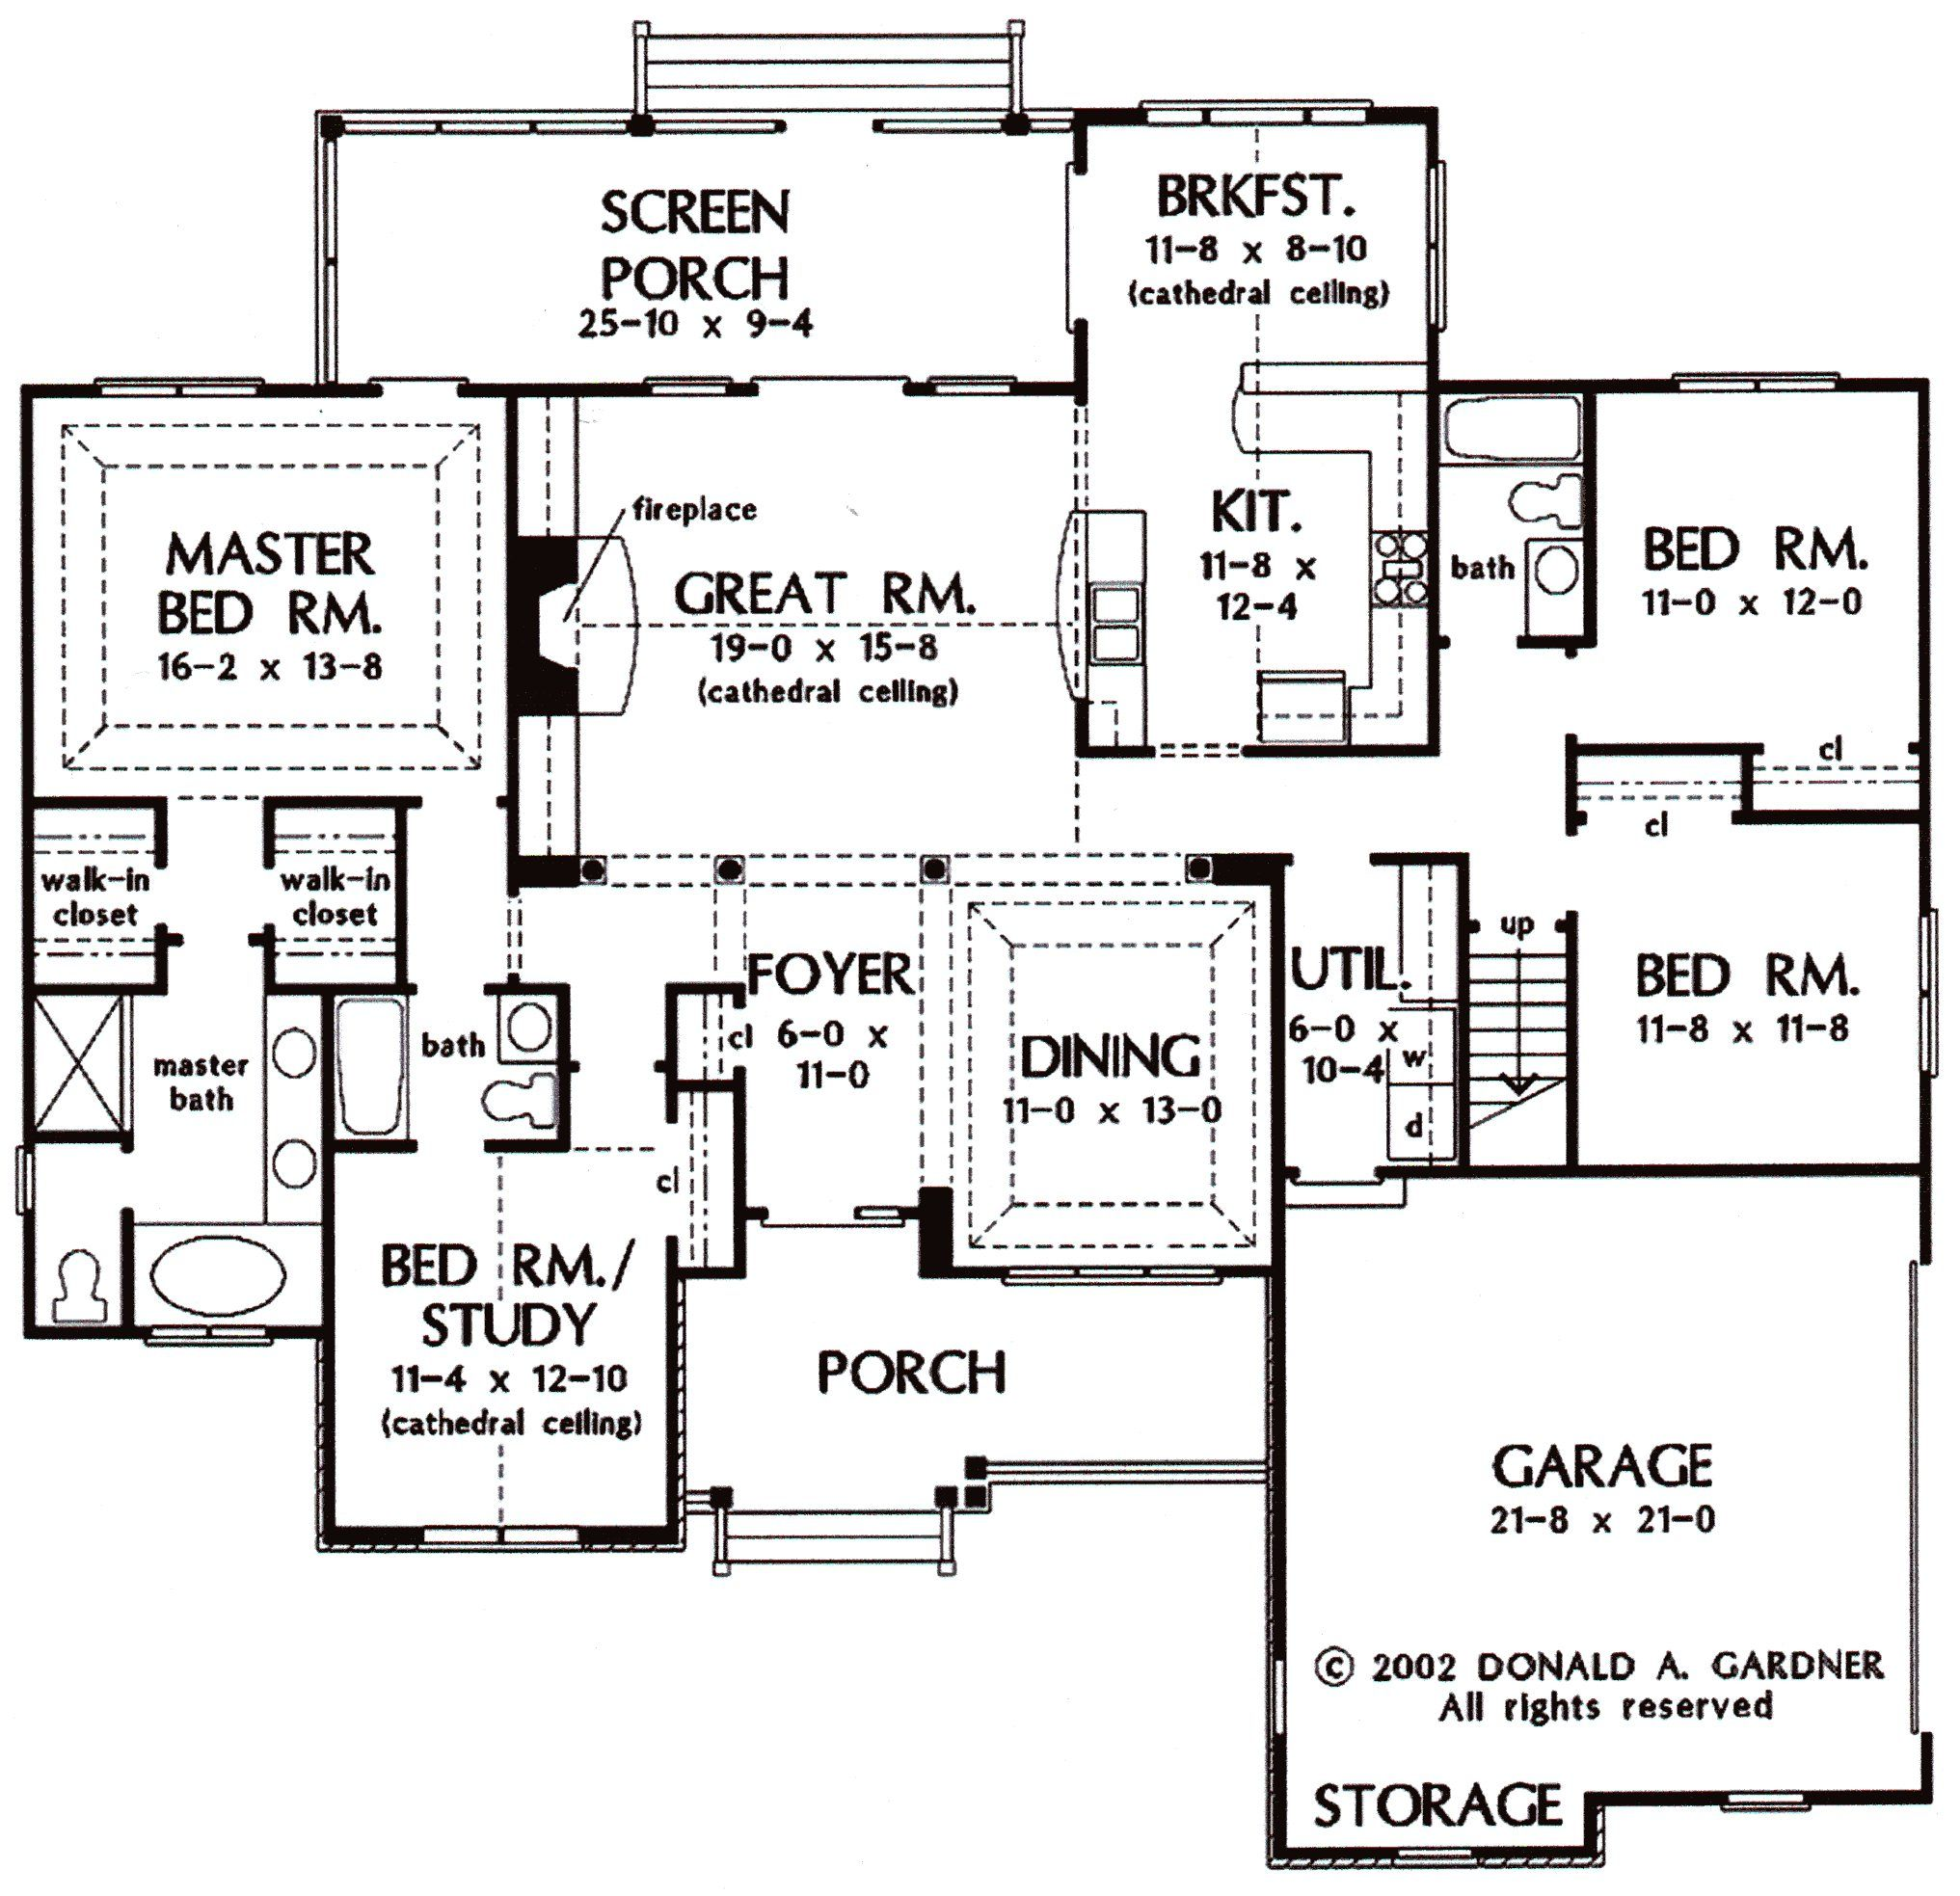 Free House Plans 2000 Sq Ft House Design Ideas: house blueprints free